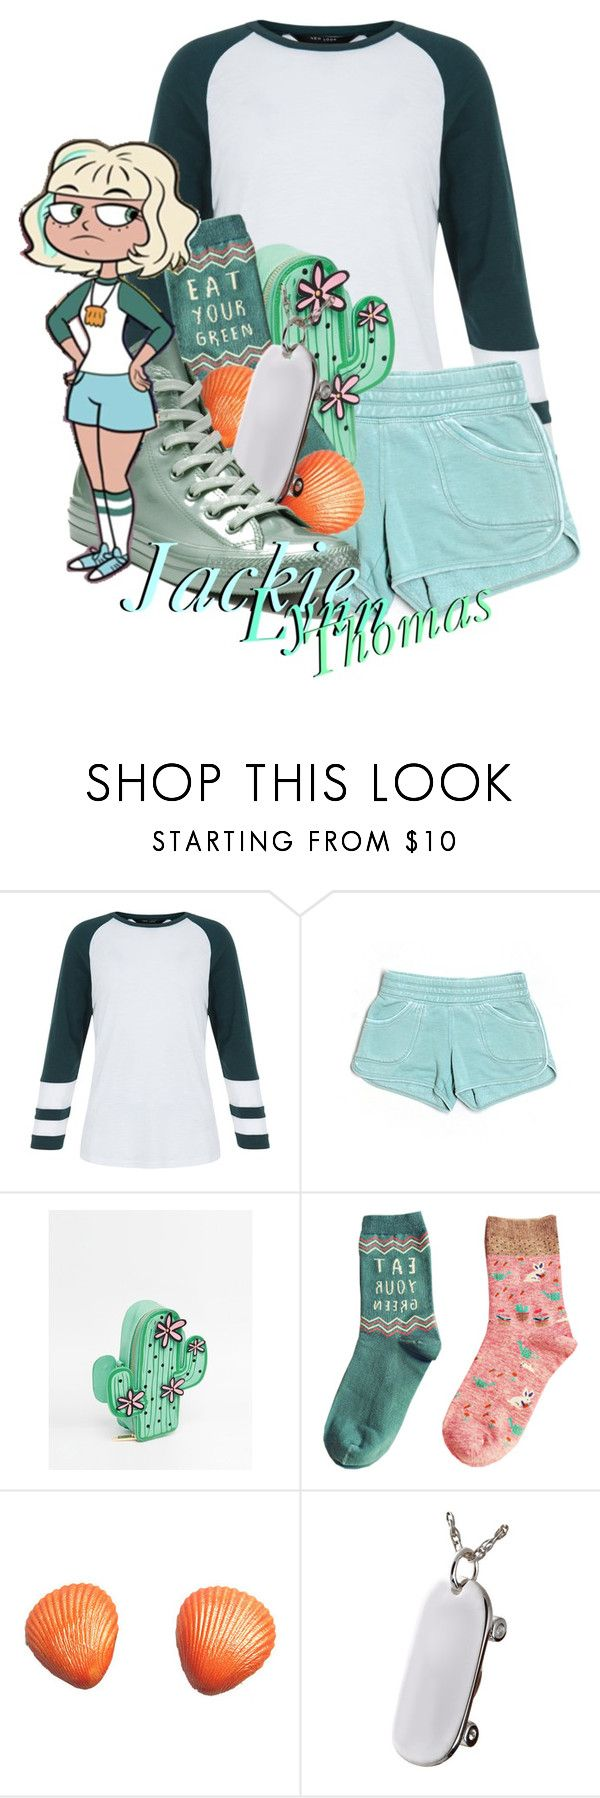 """""""Jackie Lynn Thomas from Star VS The Forces of Evil"""" by ouro-asunder ❤ liked on Polyvore featuring Hard Tail, Skinnydip and Converse"""